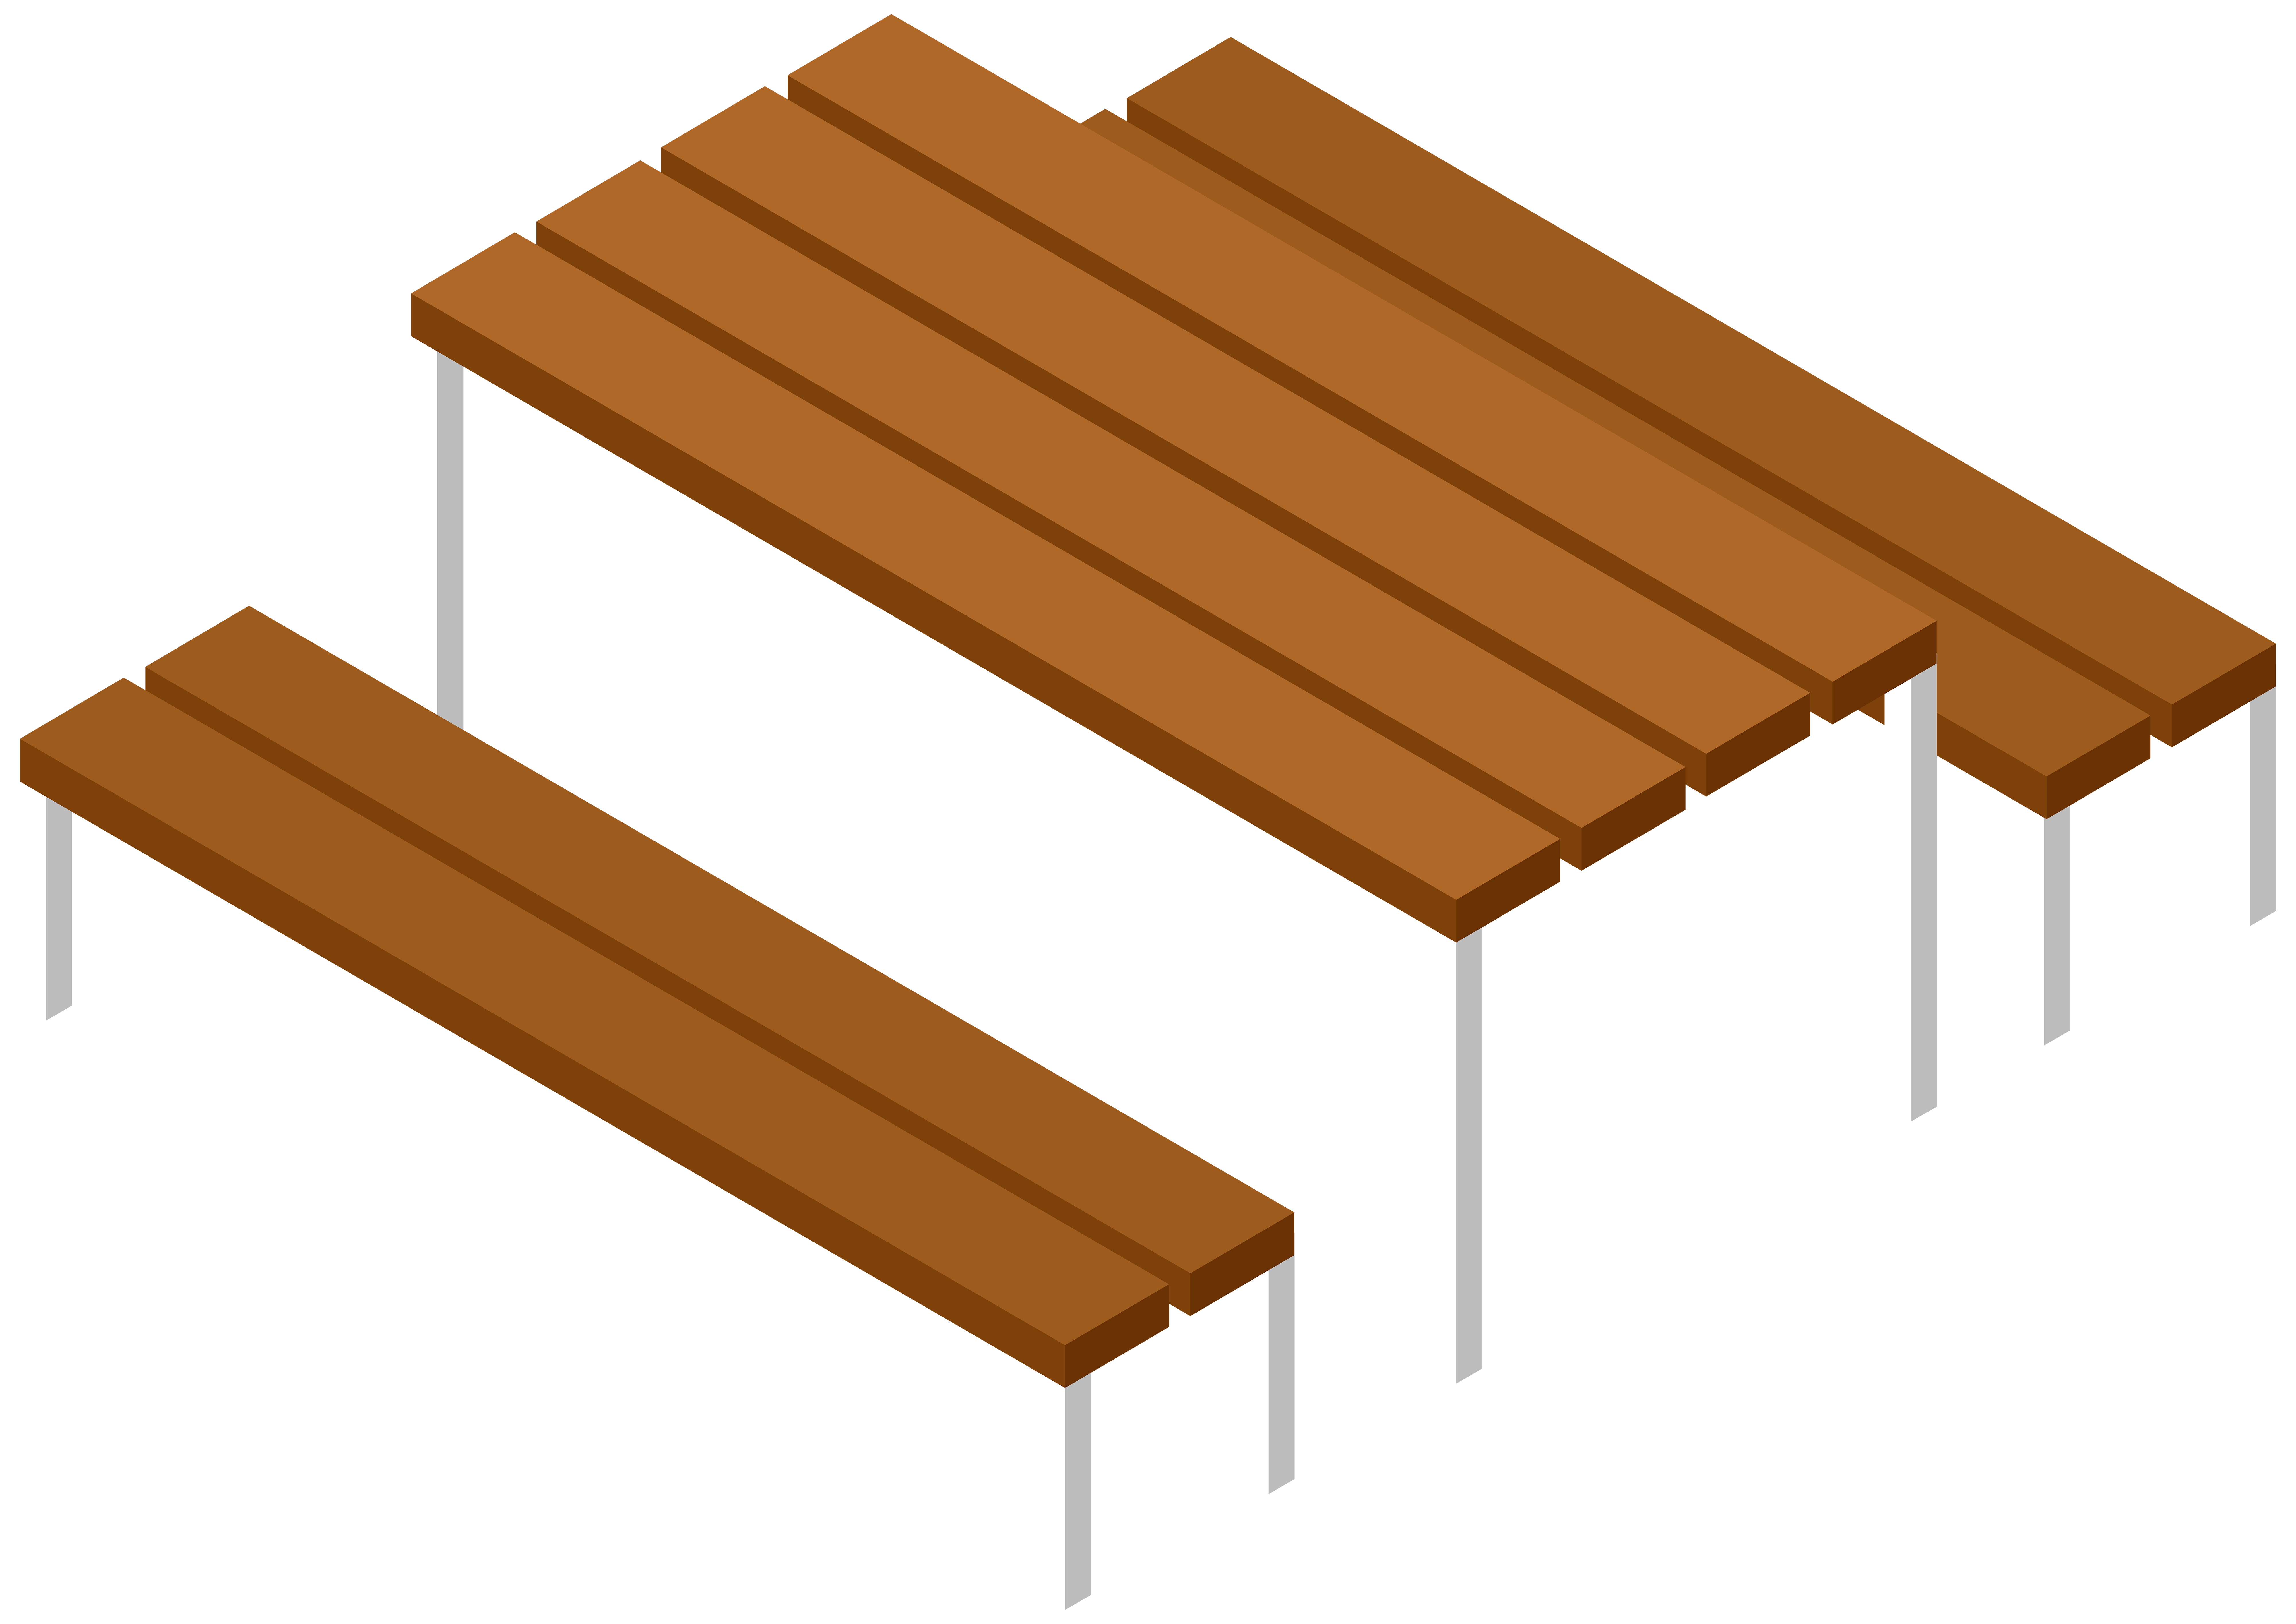 8000x5657 Picnic Table And Bench Transparent Clip Art Imageu200b Gallery